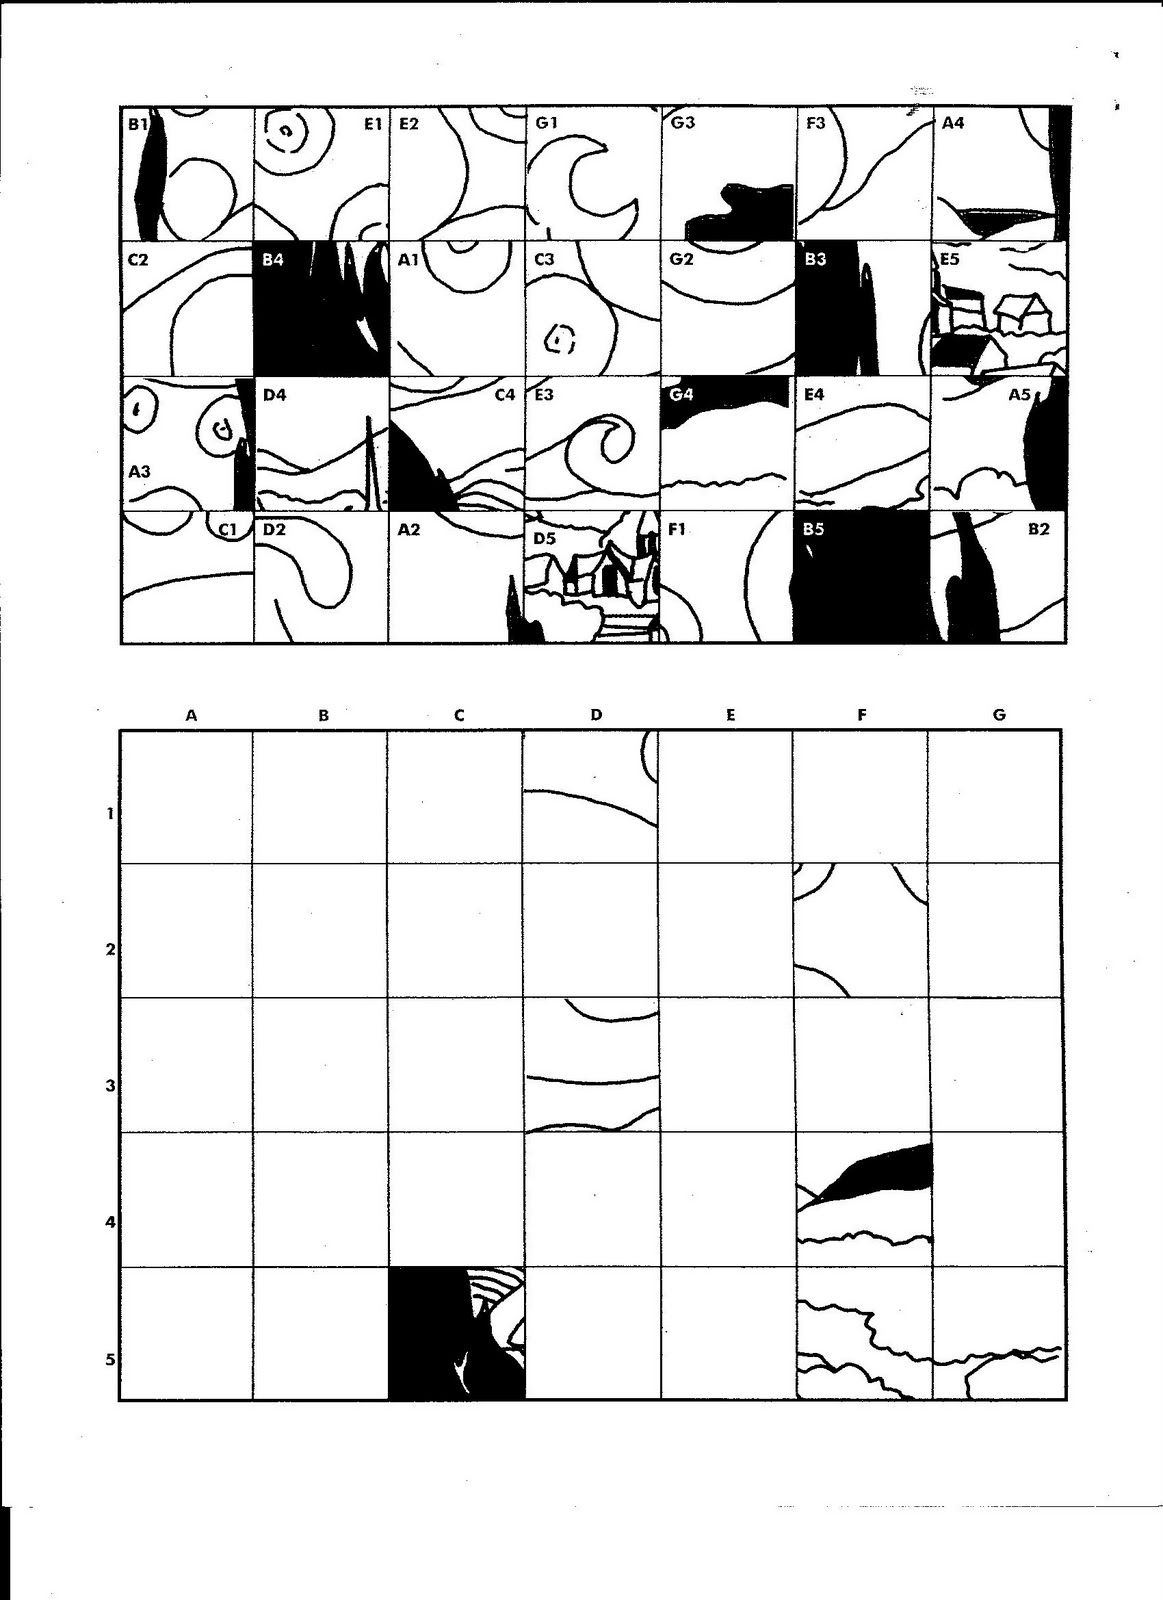 Free Worksheet Grid Art Worksheets 17 best images about group murals grid drawings on pinterest starry nights collaborative art projects and self portraits